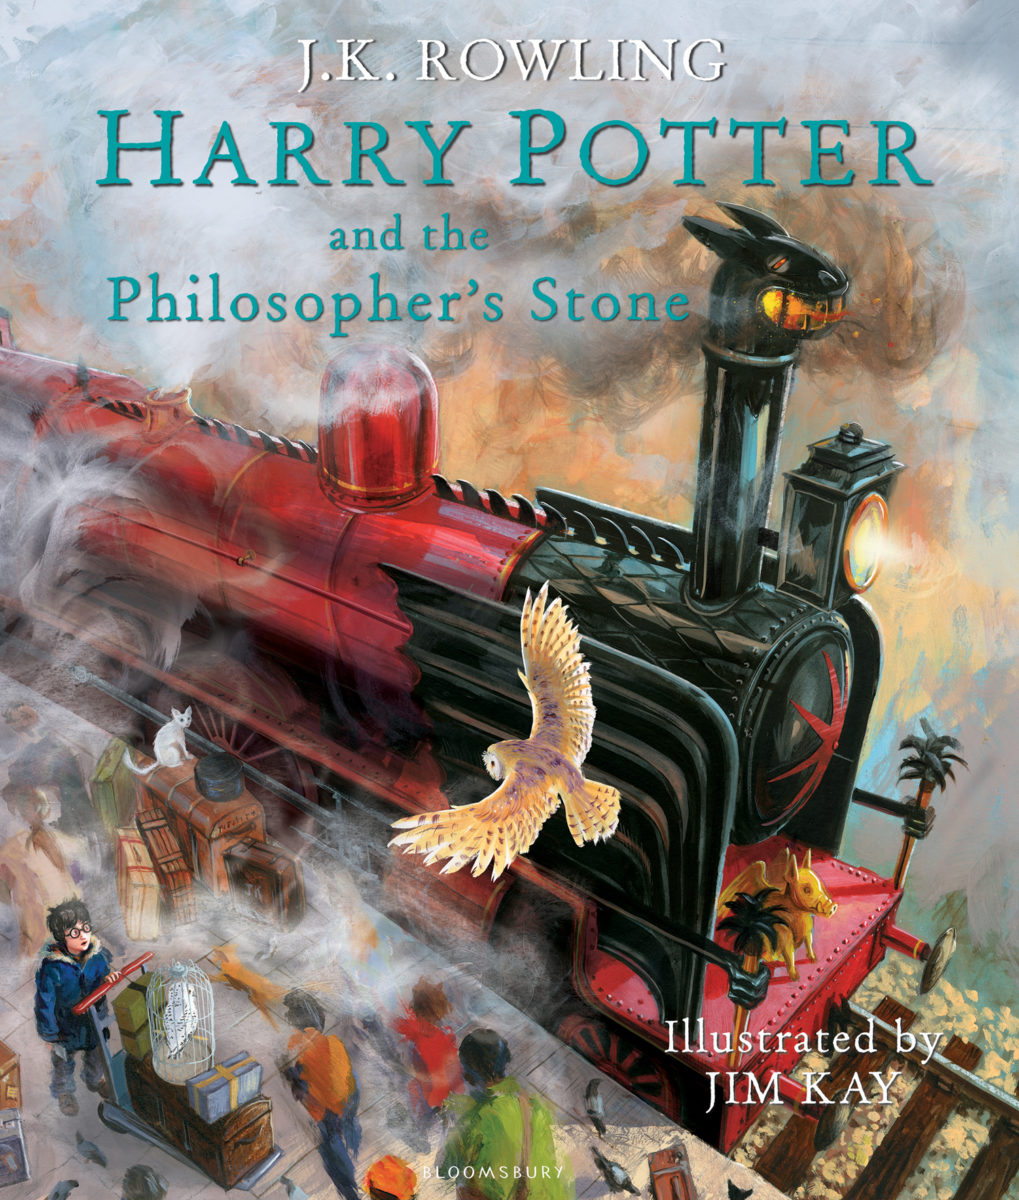 'Philosopher's Stone' illustrated edition